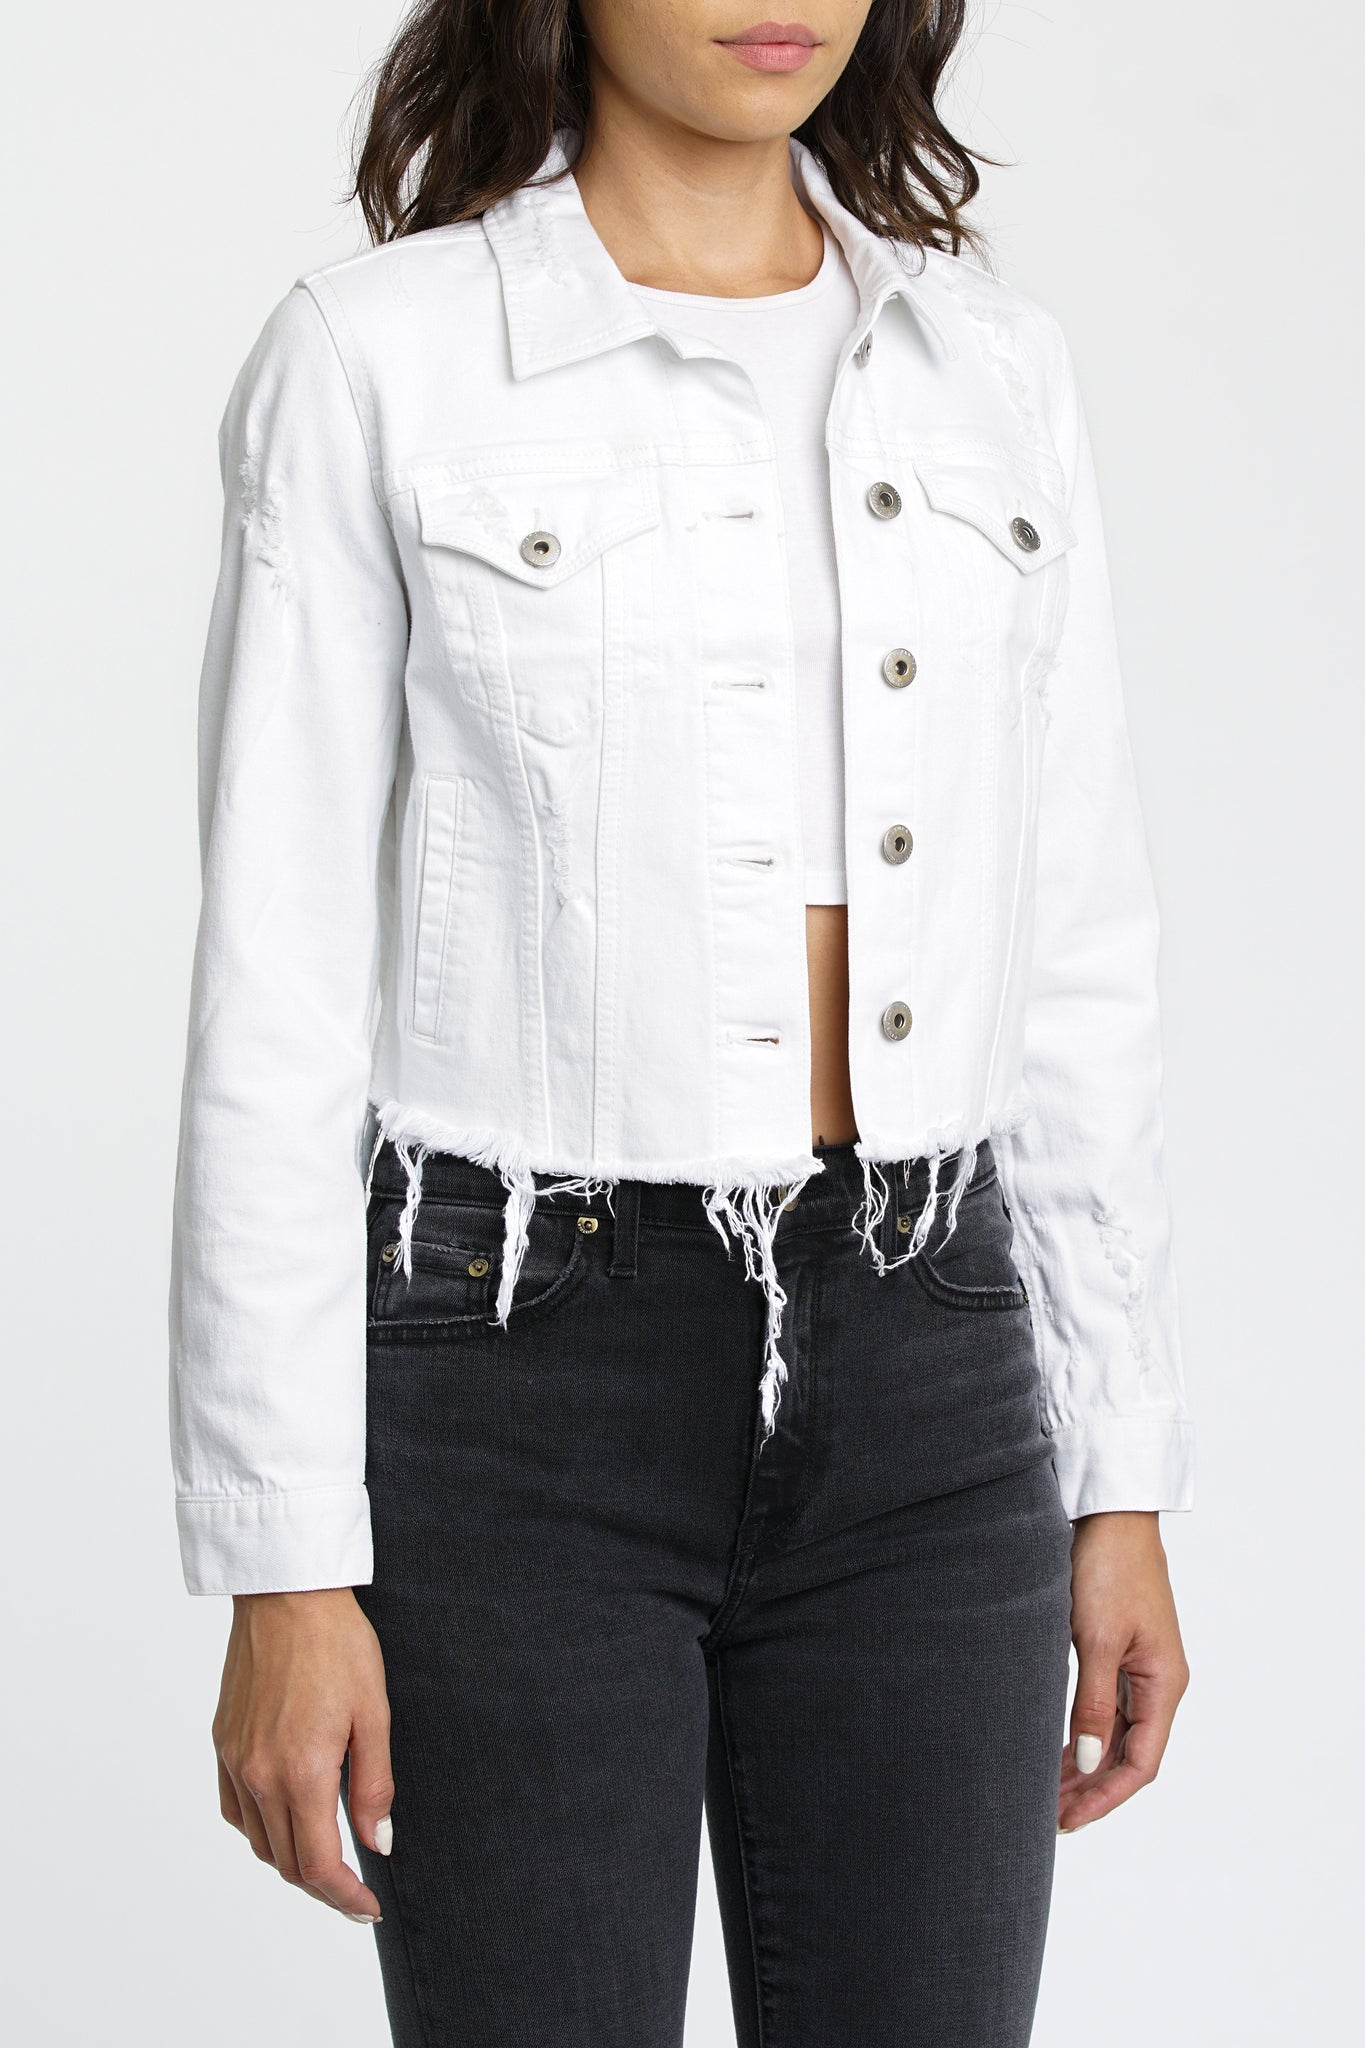 Brando Crop Fitted Denim Jacket - White Lies